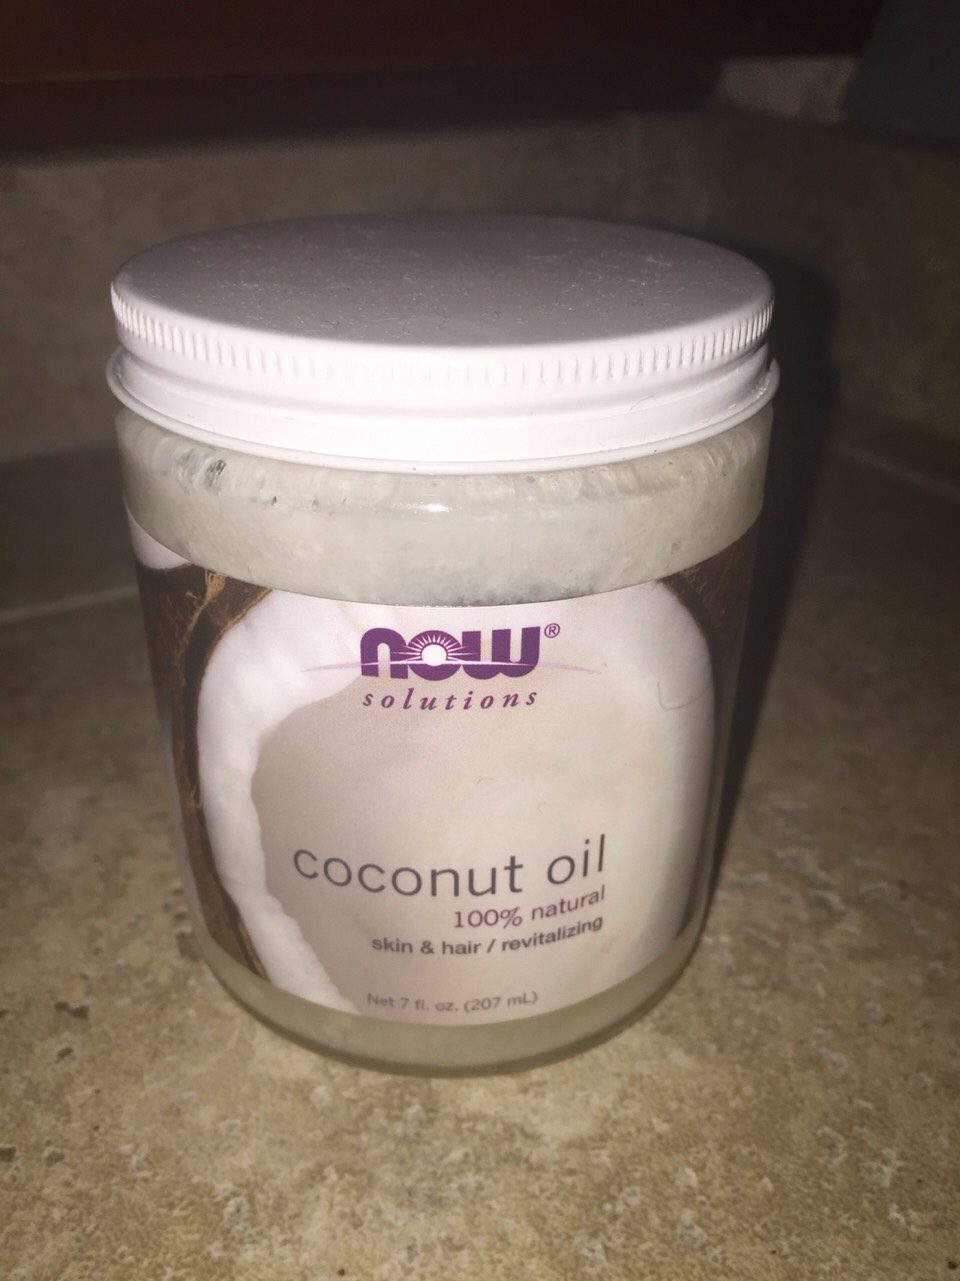 I bought this coconut oil at whole foods. It's a great way to get rid of facial blemishes and it's amazing for your hands.